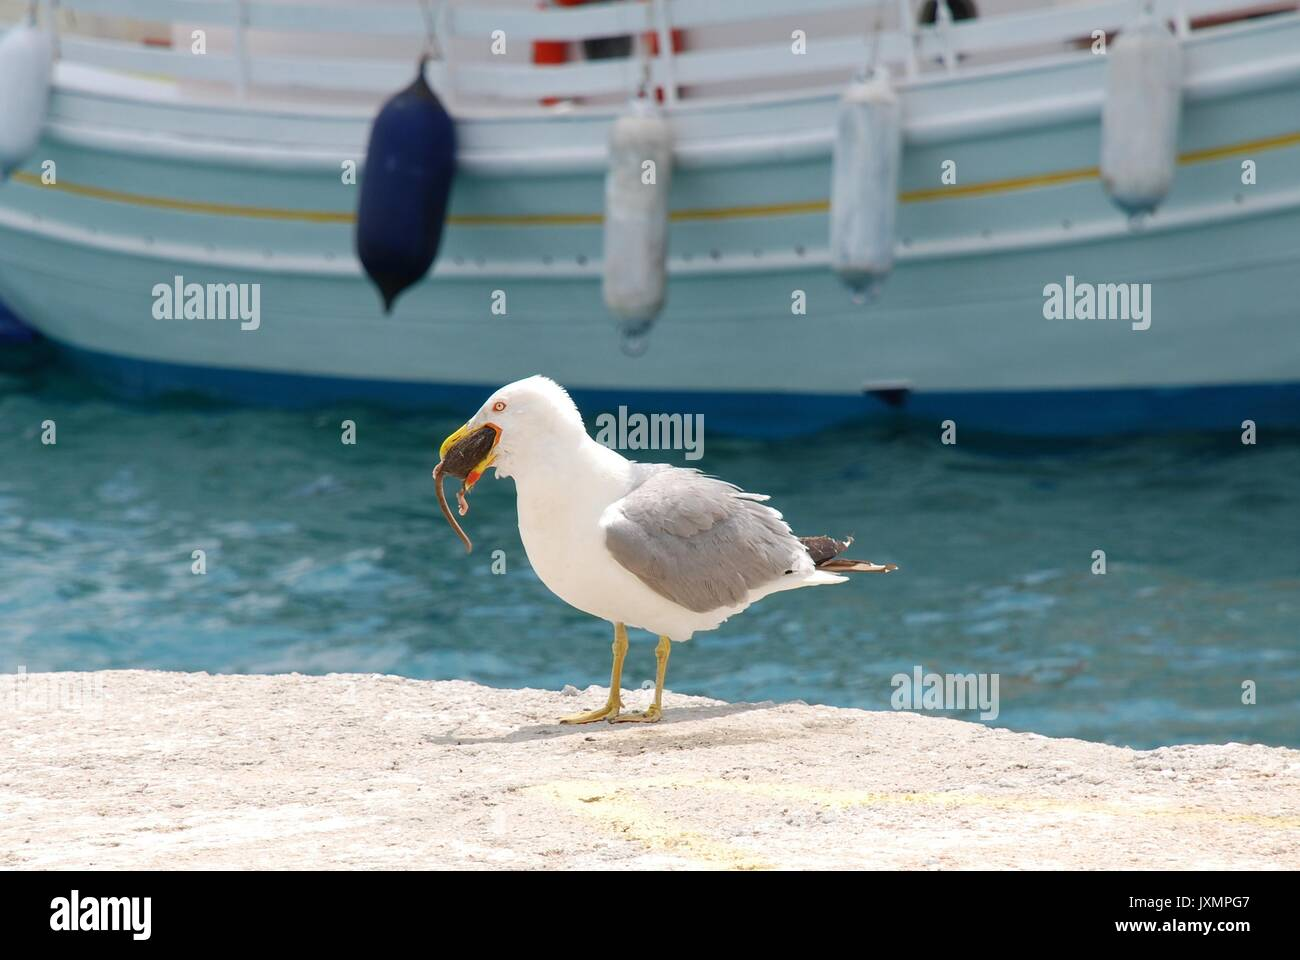 A gull eating a rat in the harbour at Skiathos Town on the Greek island of Skiathos. - Stock Image